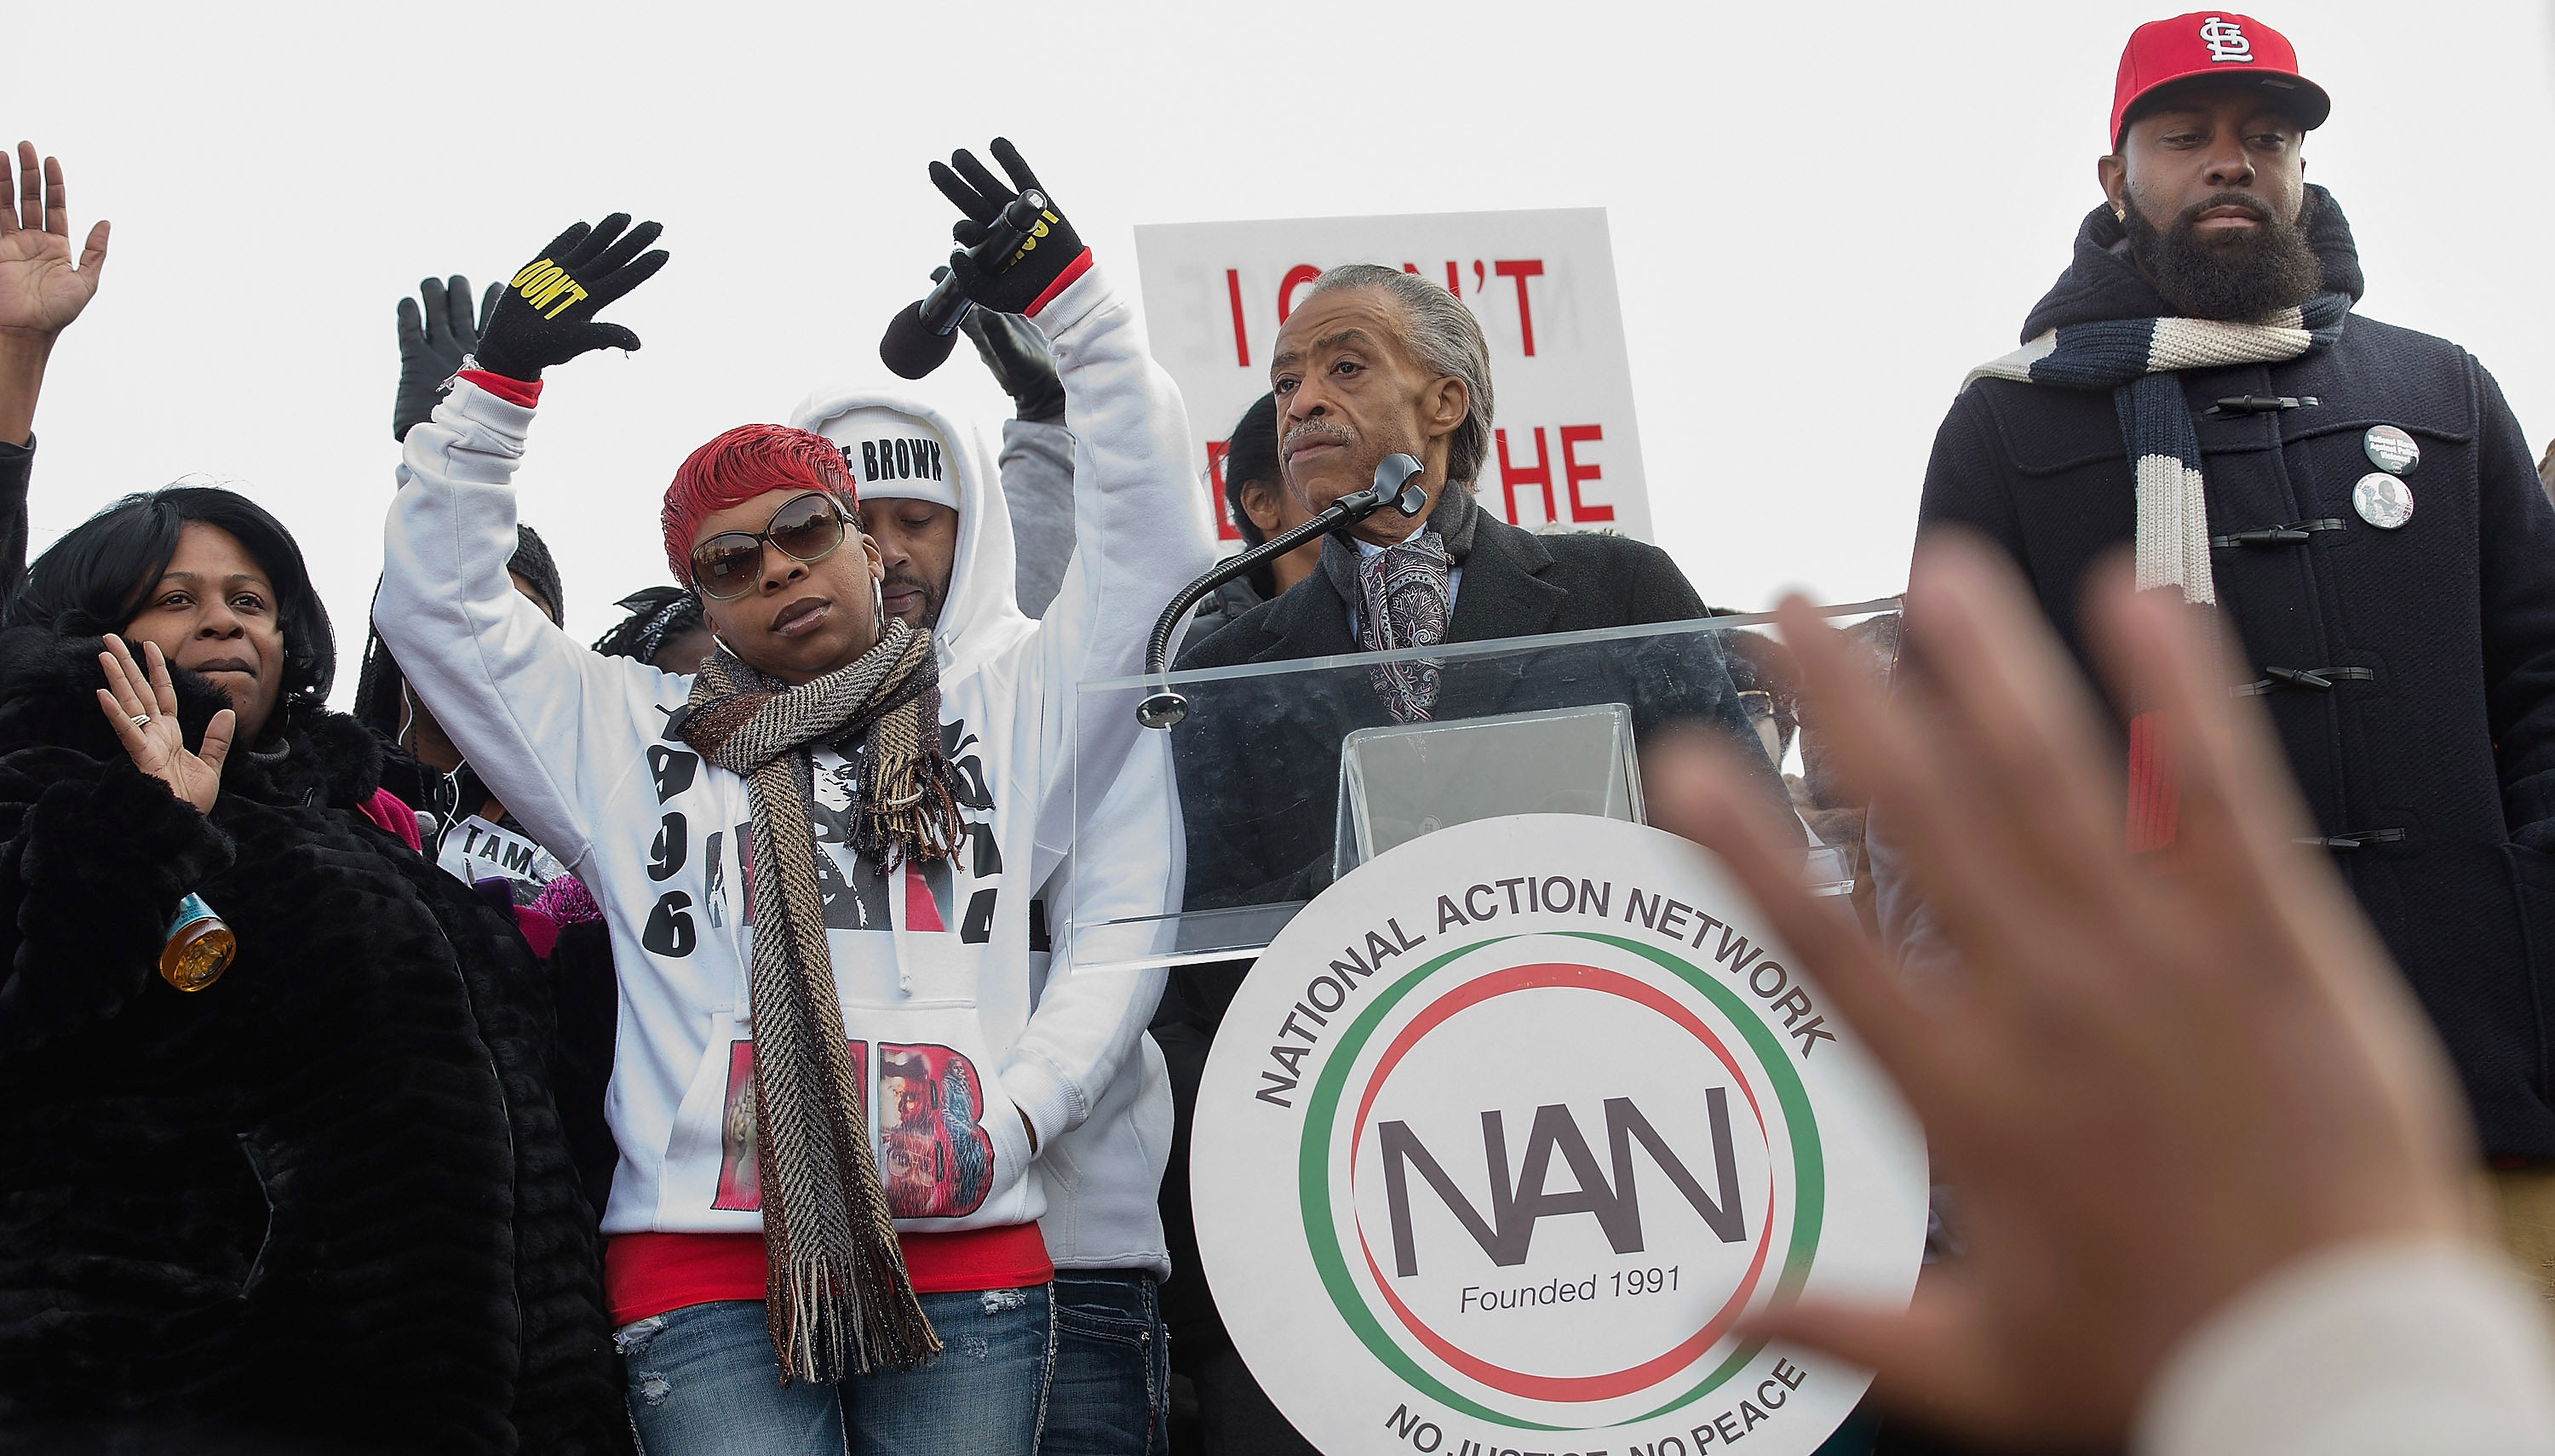 Samaira Rice, the mother of Tamir Rice; Lesley McSpadden, the mother of Michael Brown Jr; Rev. Al Sharpton and Michael Brown Sr., the father of Michael Brown Jr, raise their hands in the air during the 'Justice For All' march and rally through the nation's capital December 13, 2014 in Washington, DC.